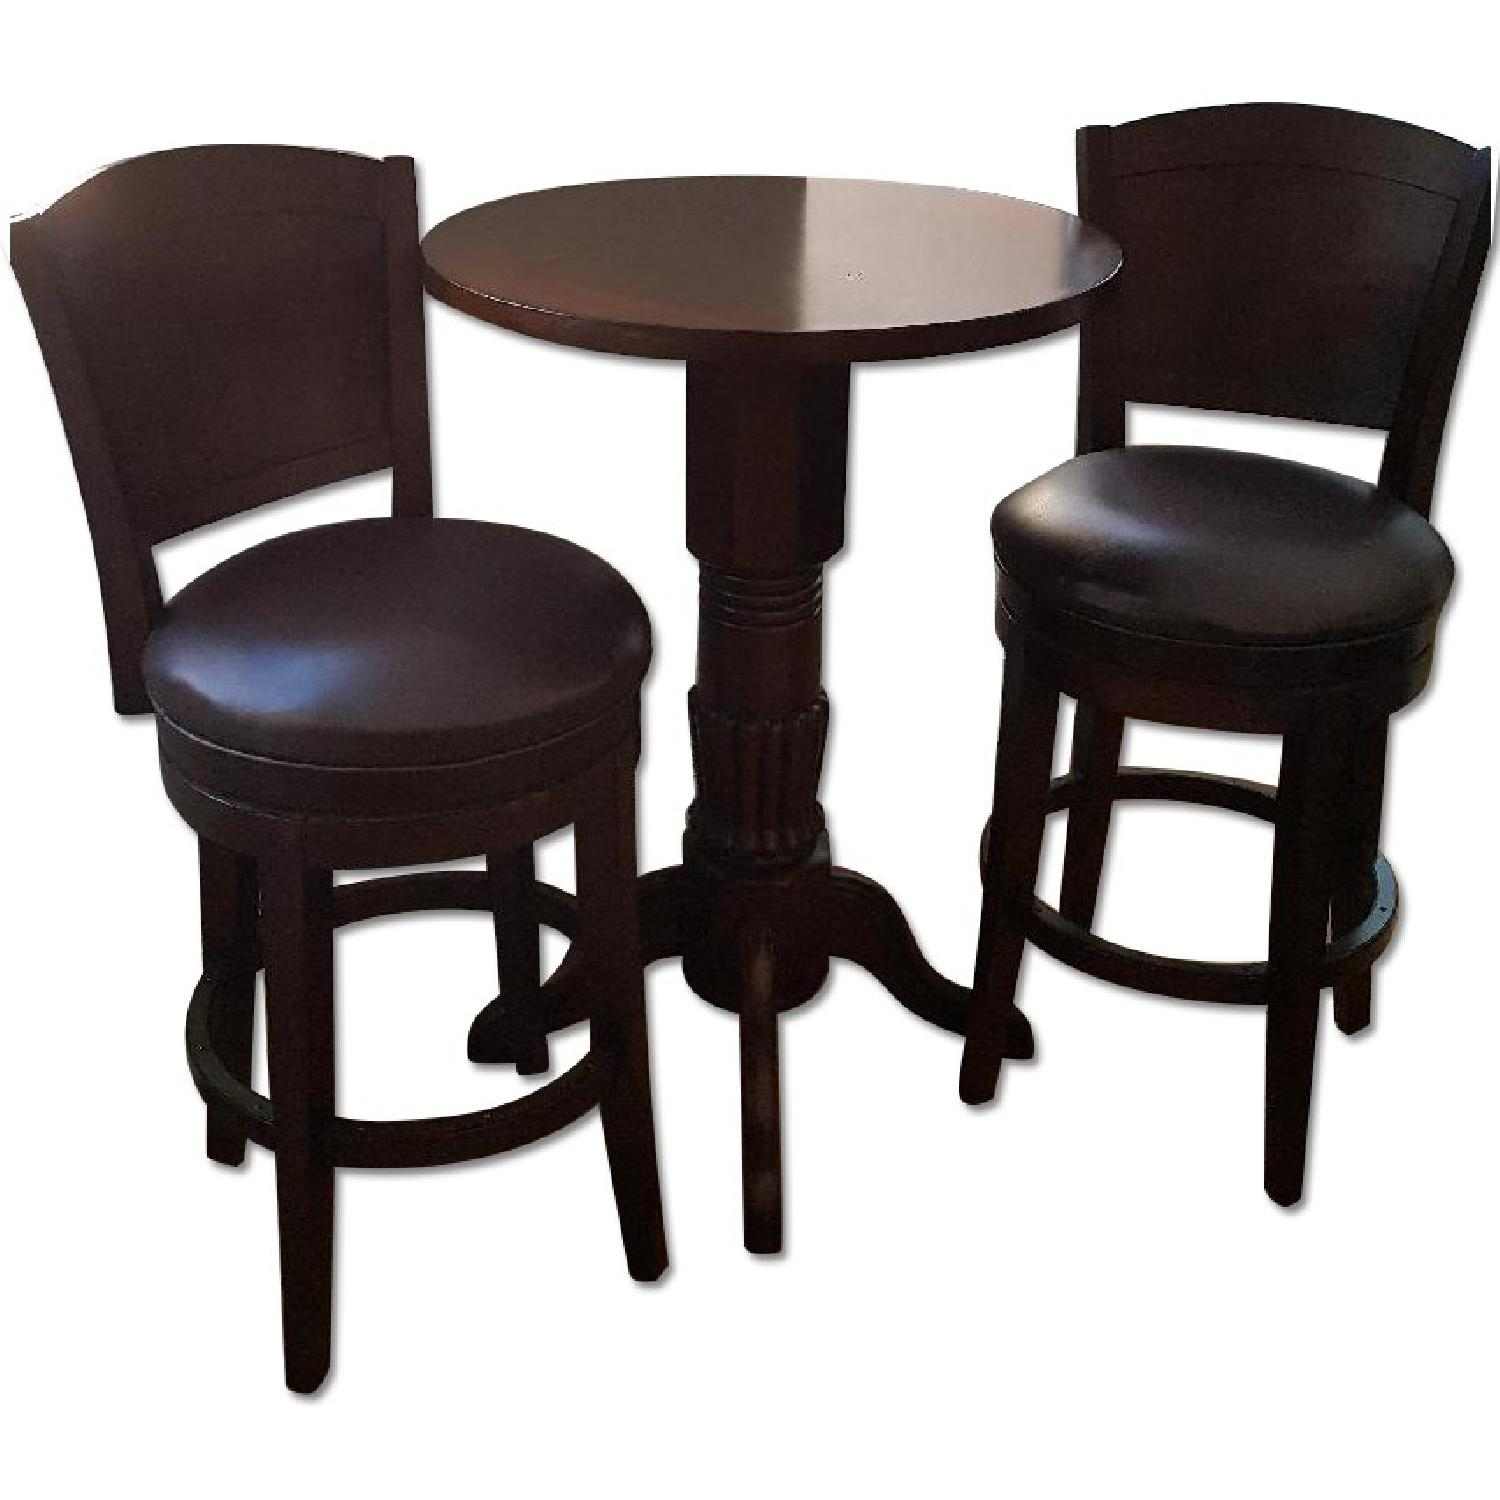 Raymour And Flanigan Kitchen Sets: Raymour & Flanigan 3-Piece Bar-Height Dining Set